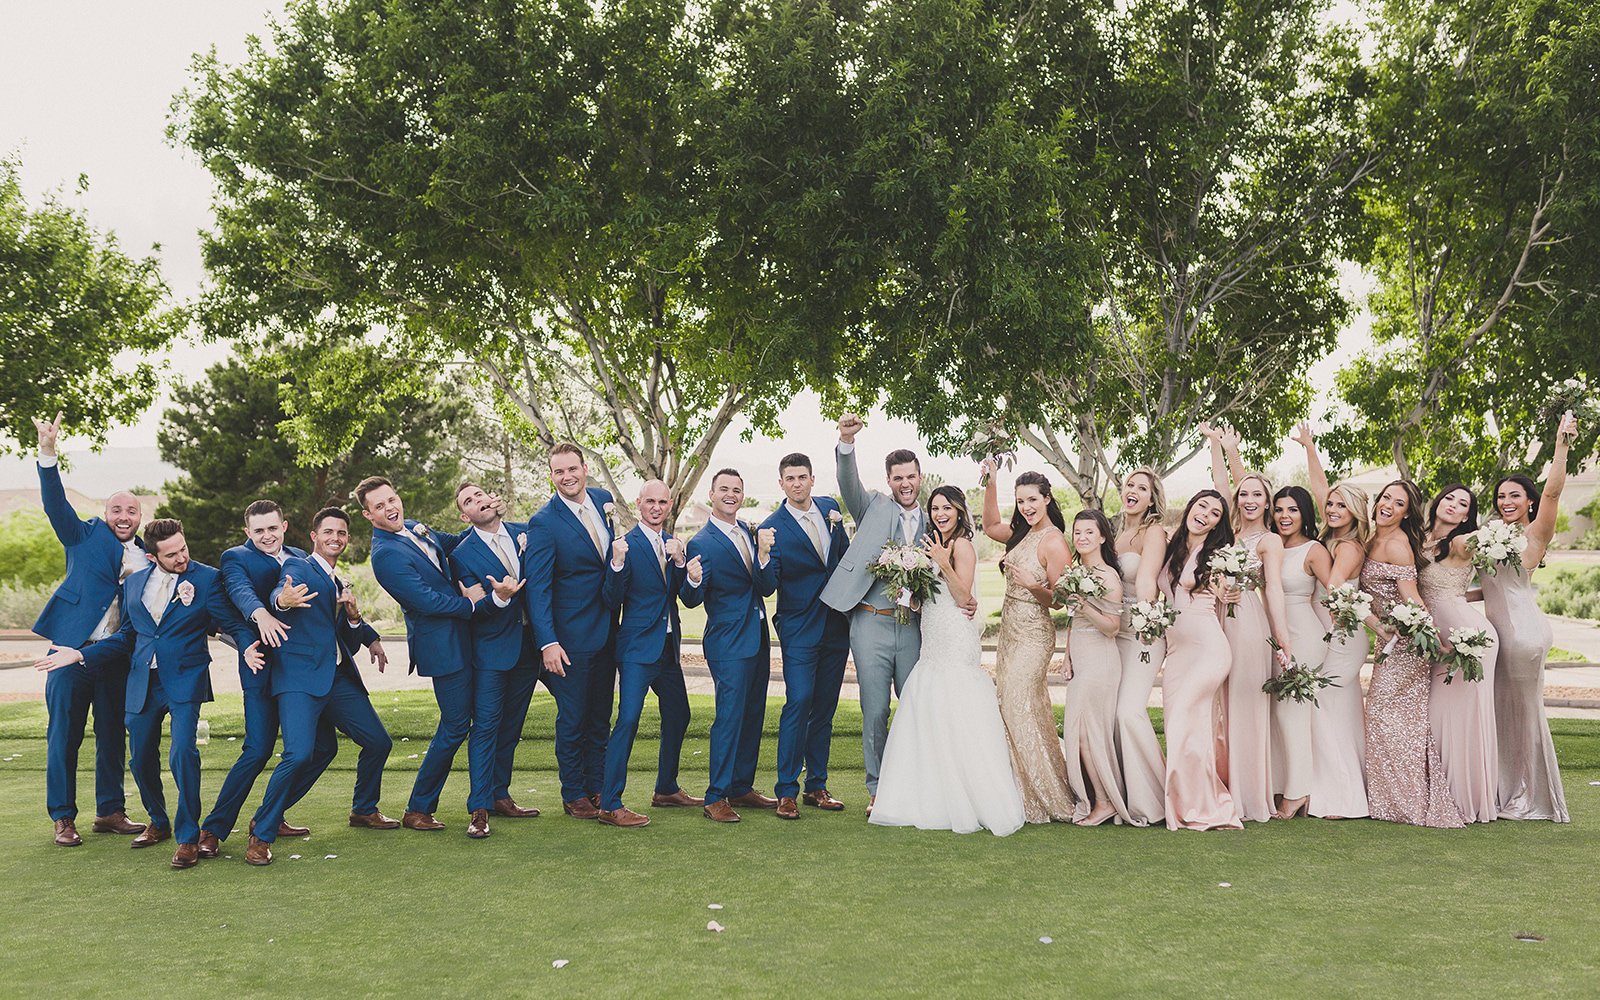 Henderson Large Bridal Party Wedding